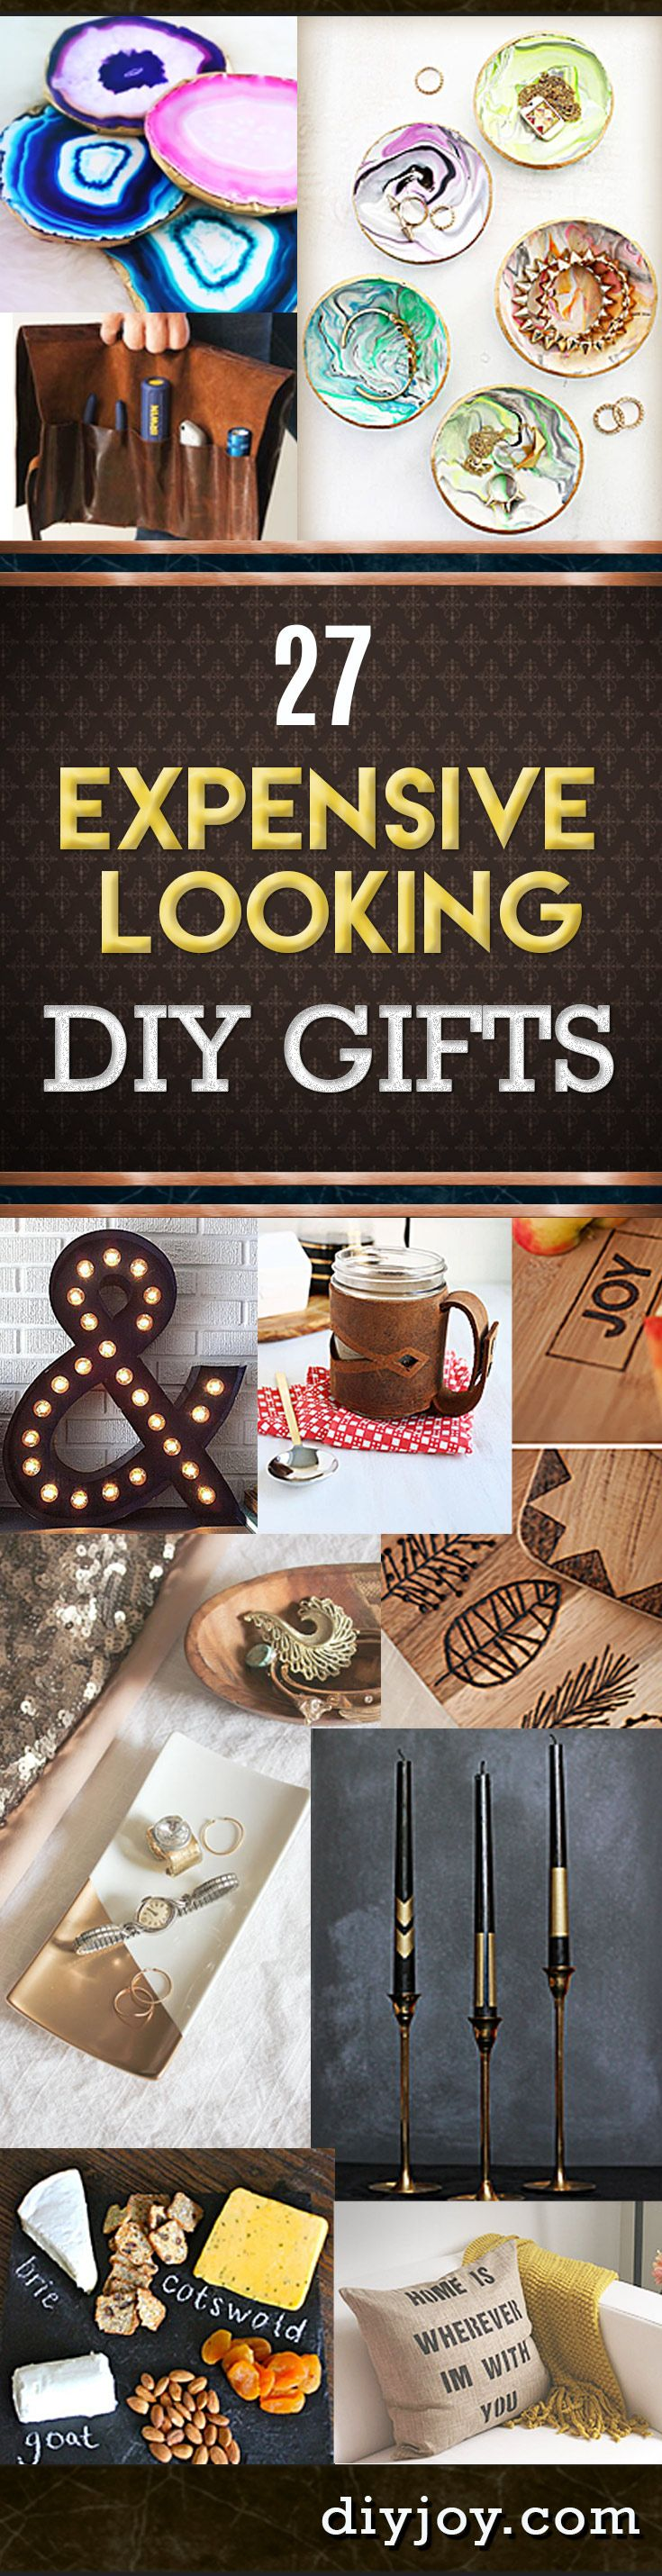 Best 25 diy gifts ideas on pinterest diy christmas gifts 27 expensive looking inexpensive diy gifts solutioingenieria